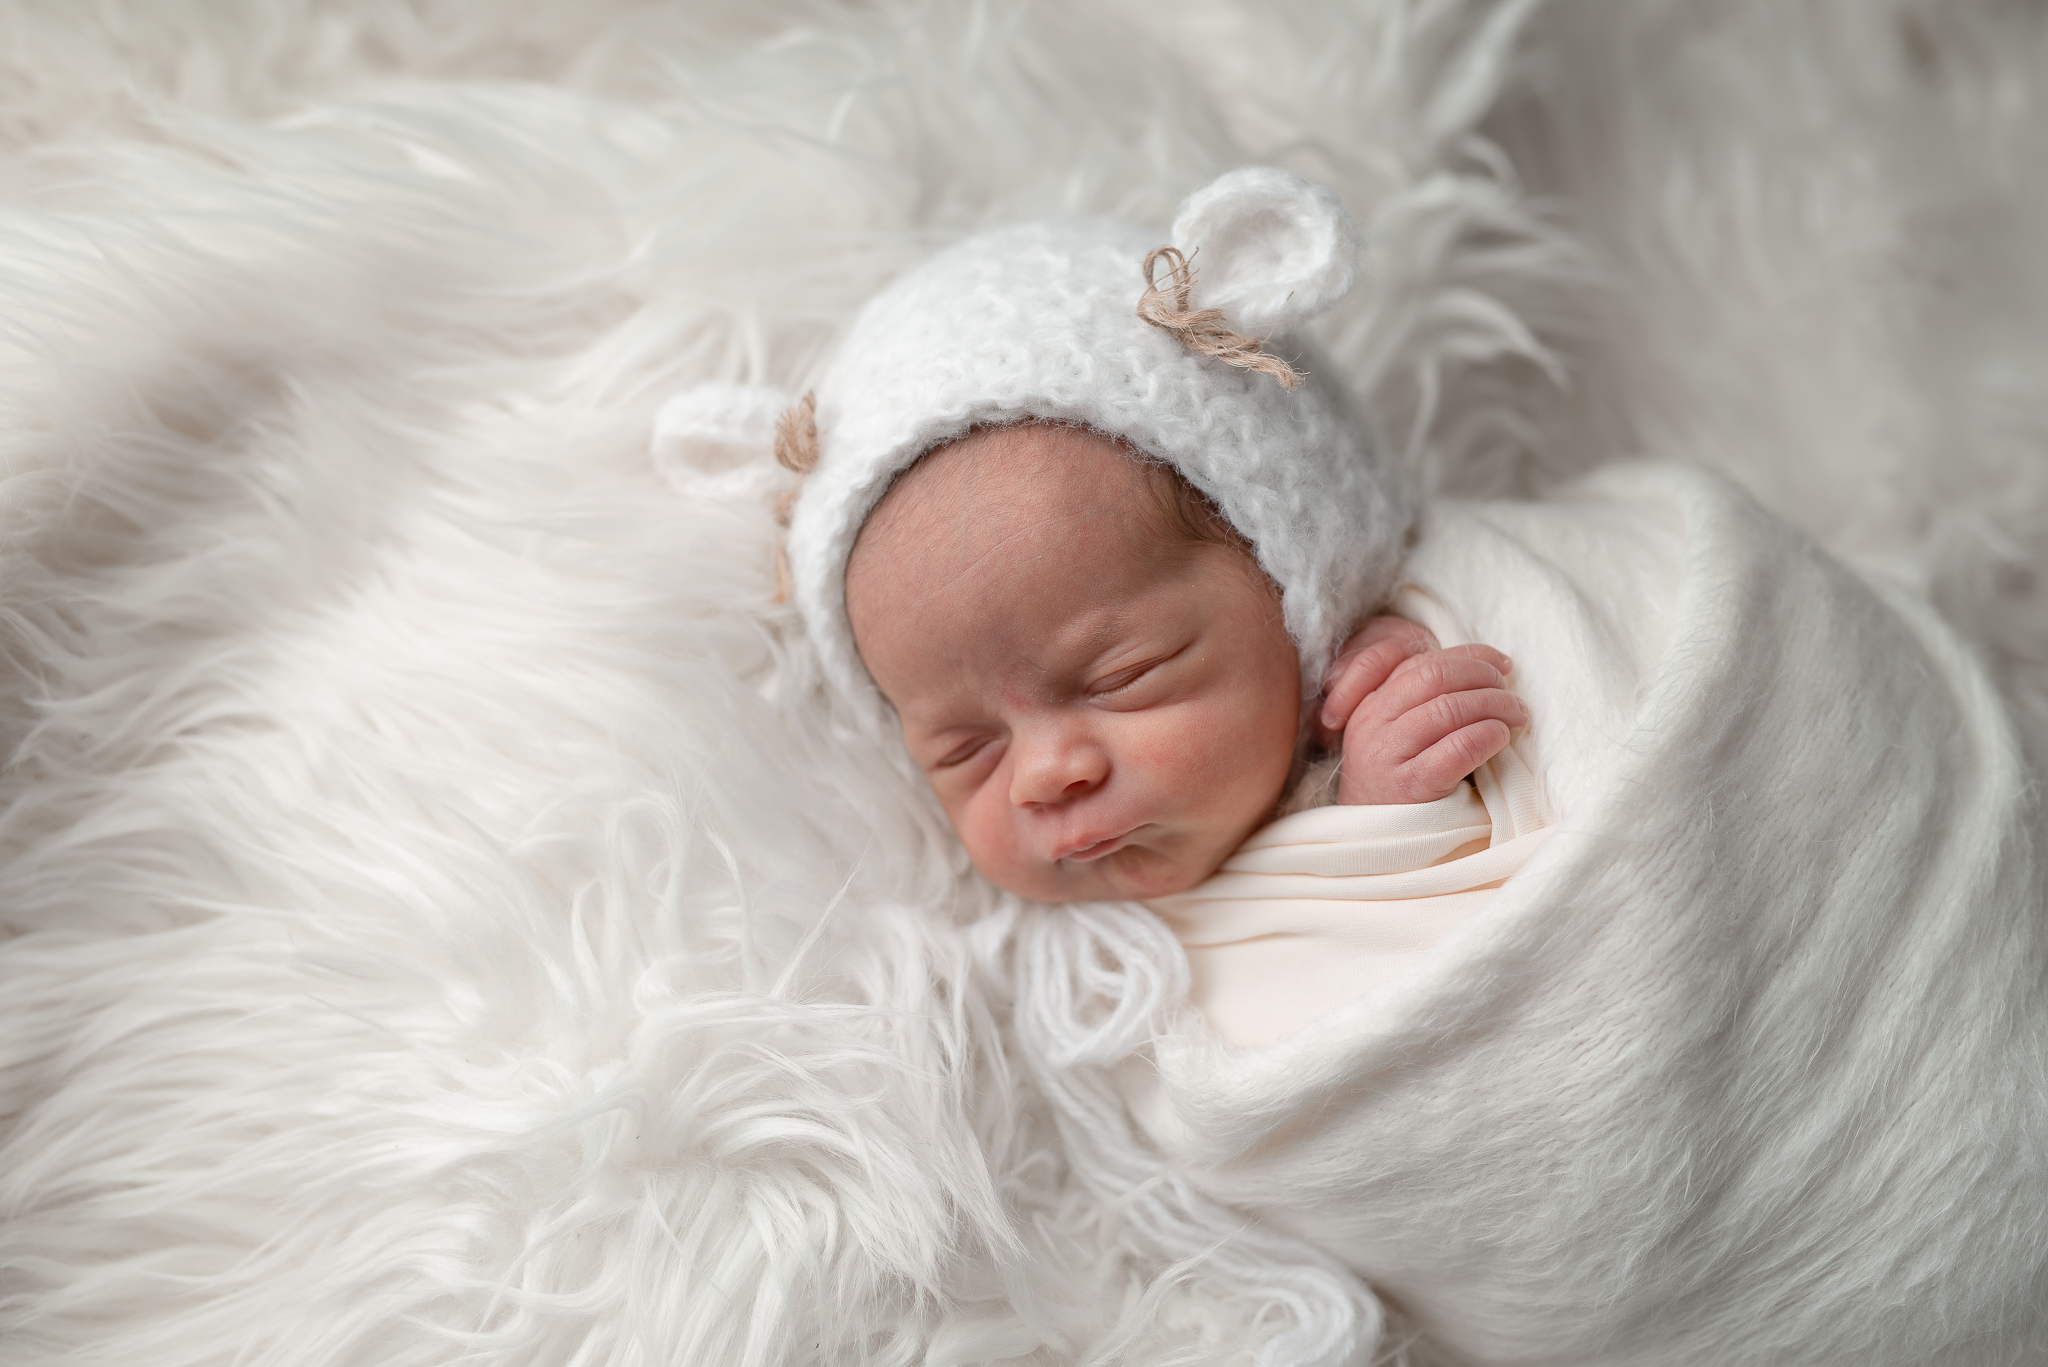 Newborn51NaomiLuciennePhotography032019-Edit.jpg